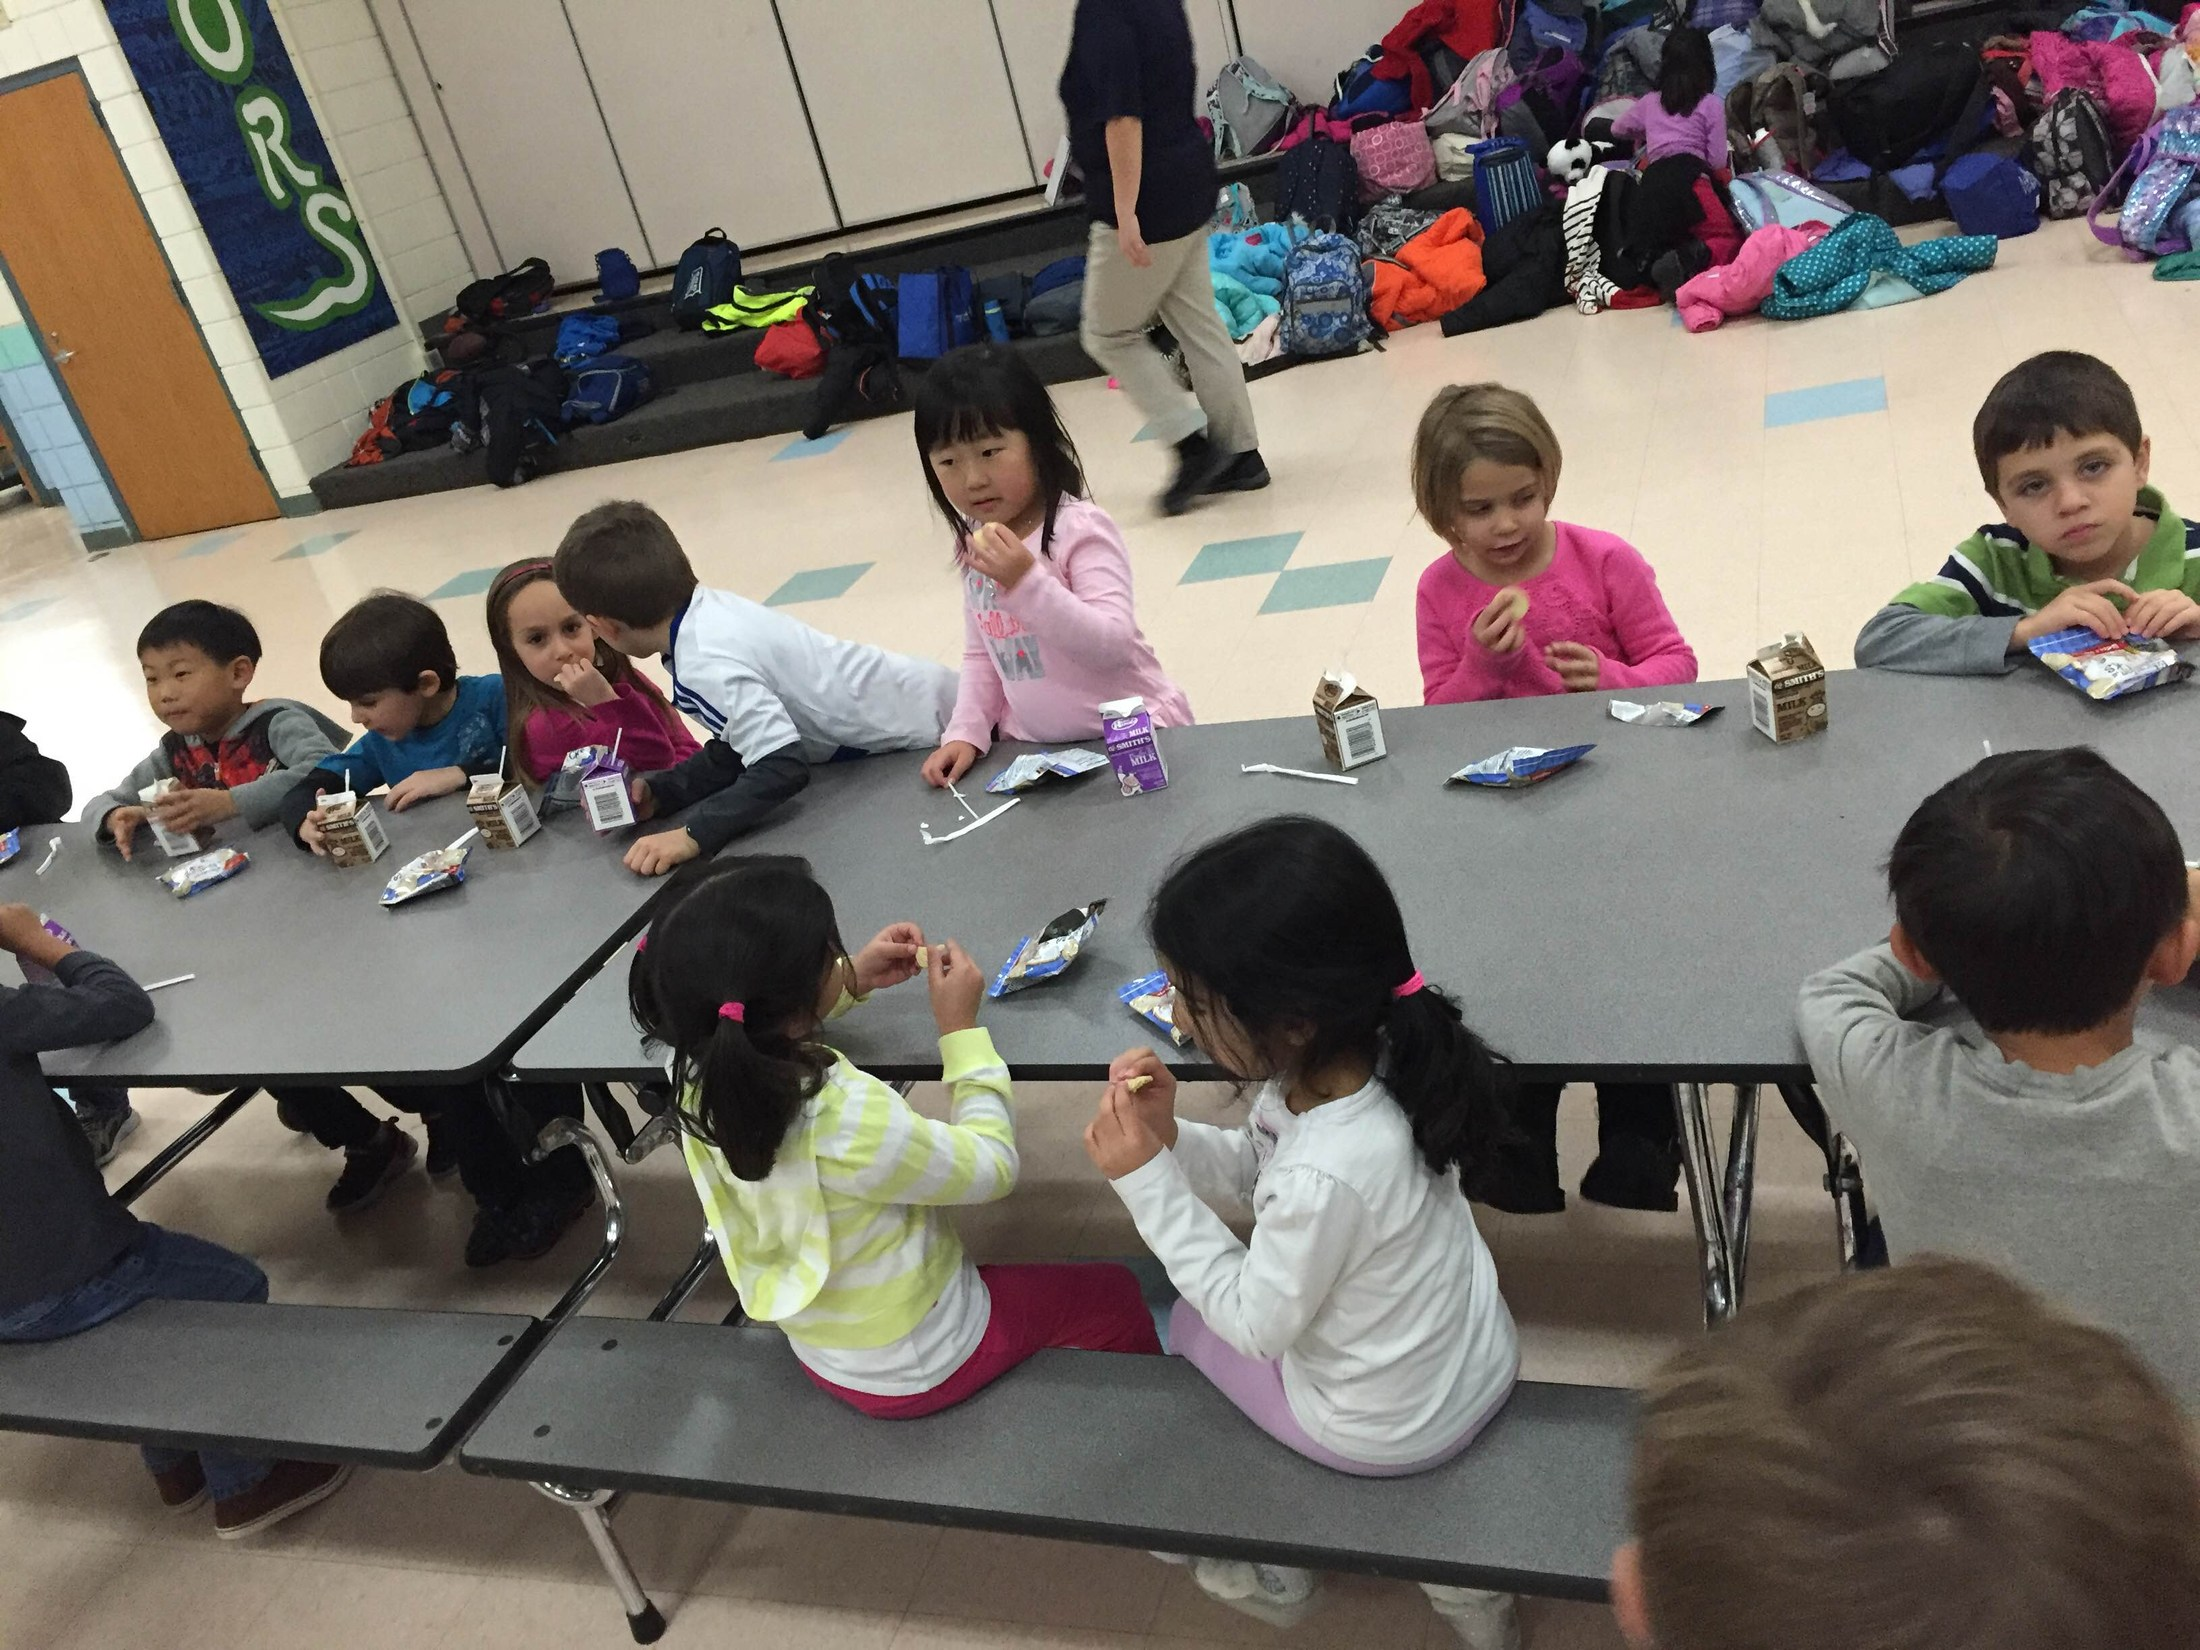 Kids' Club at snack time.